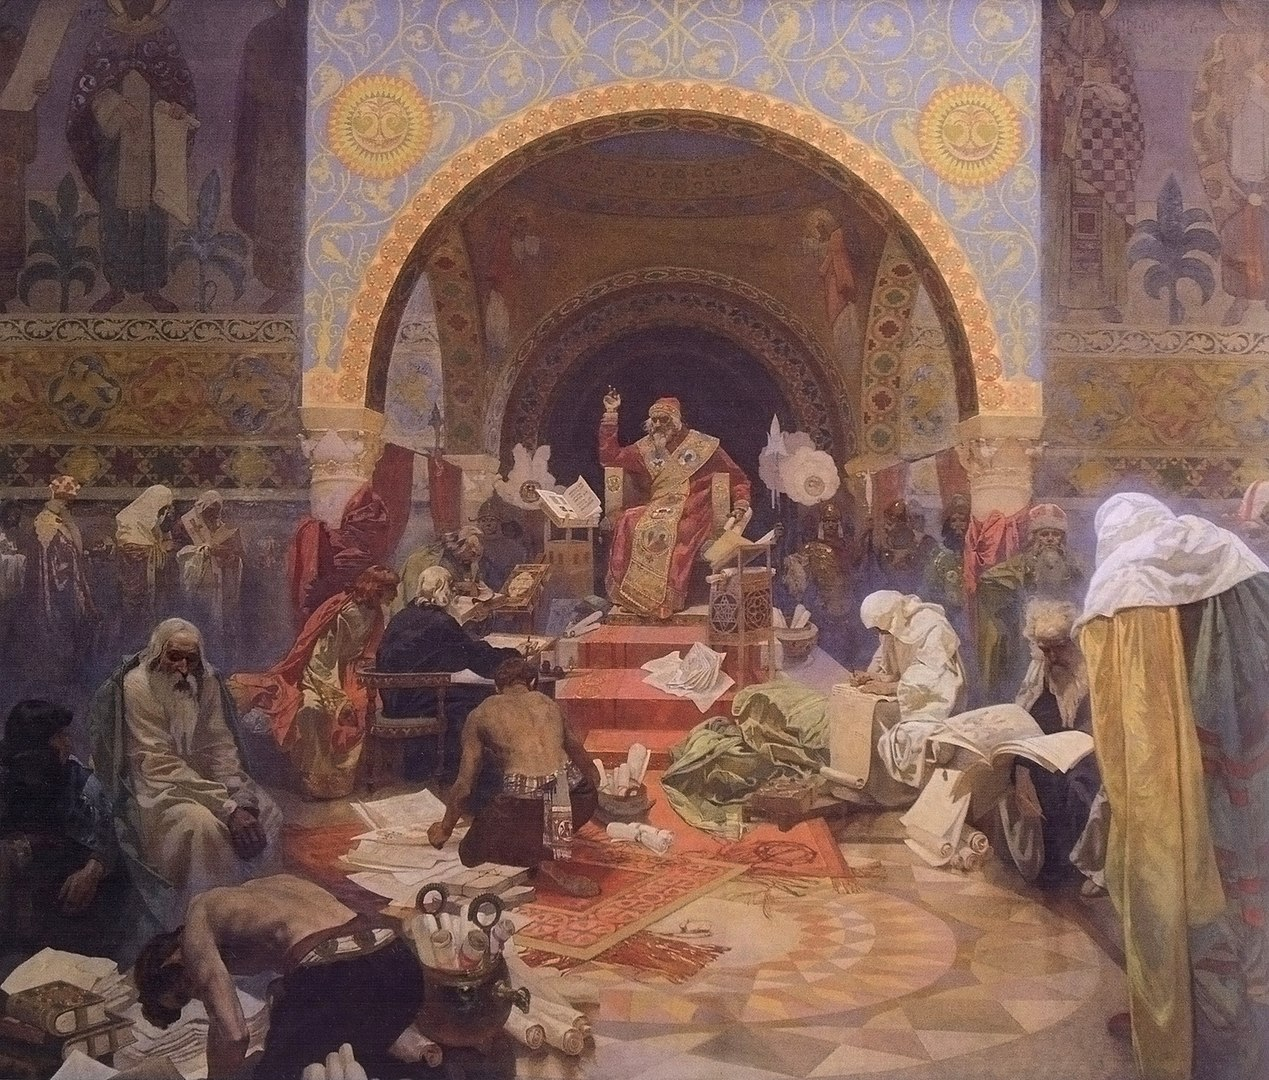 Alfons Mucha's Slav Epic may return to Moravský Krumlov for temporary display